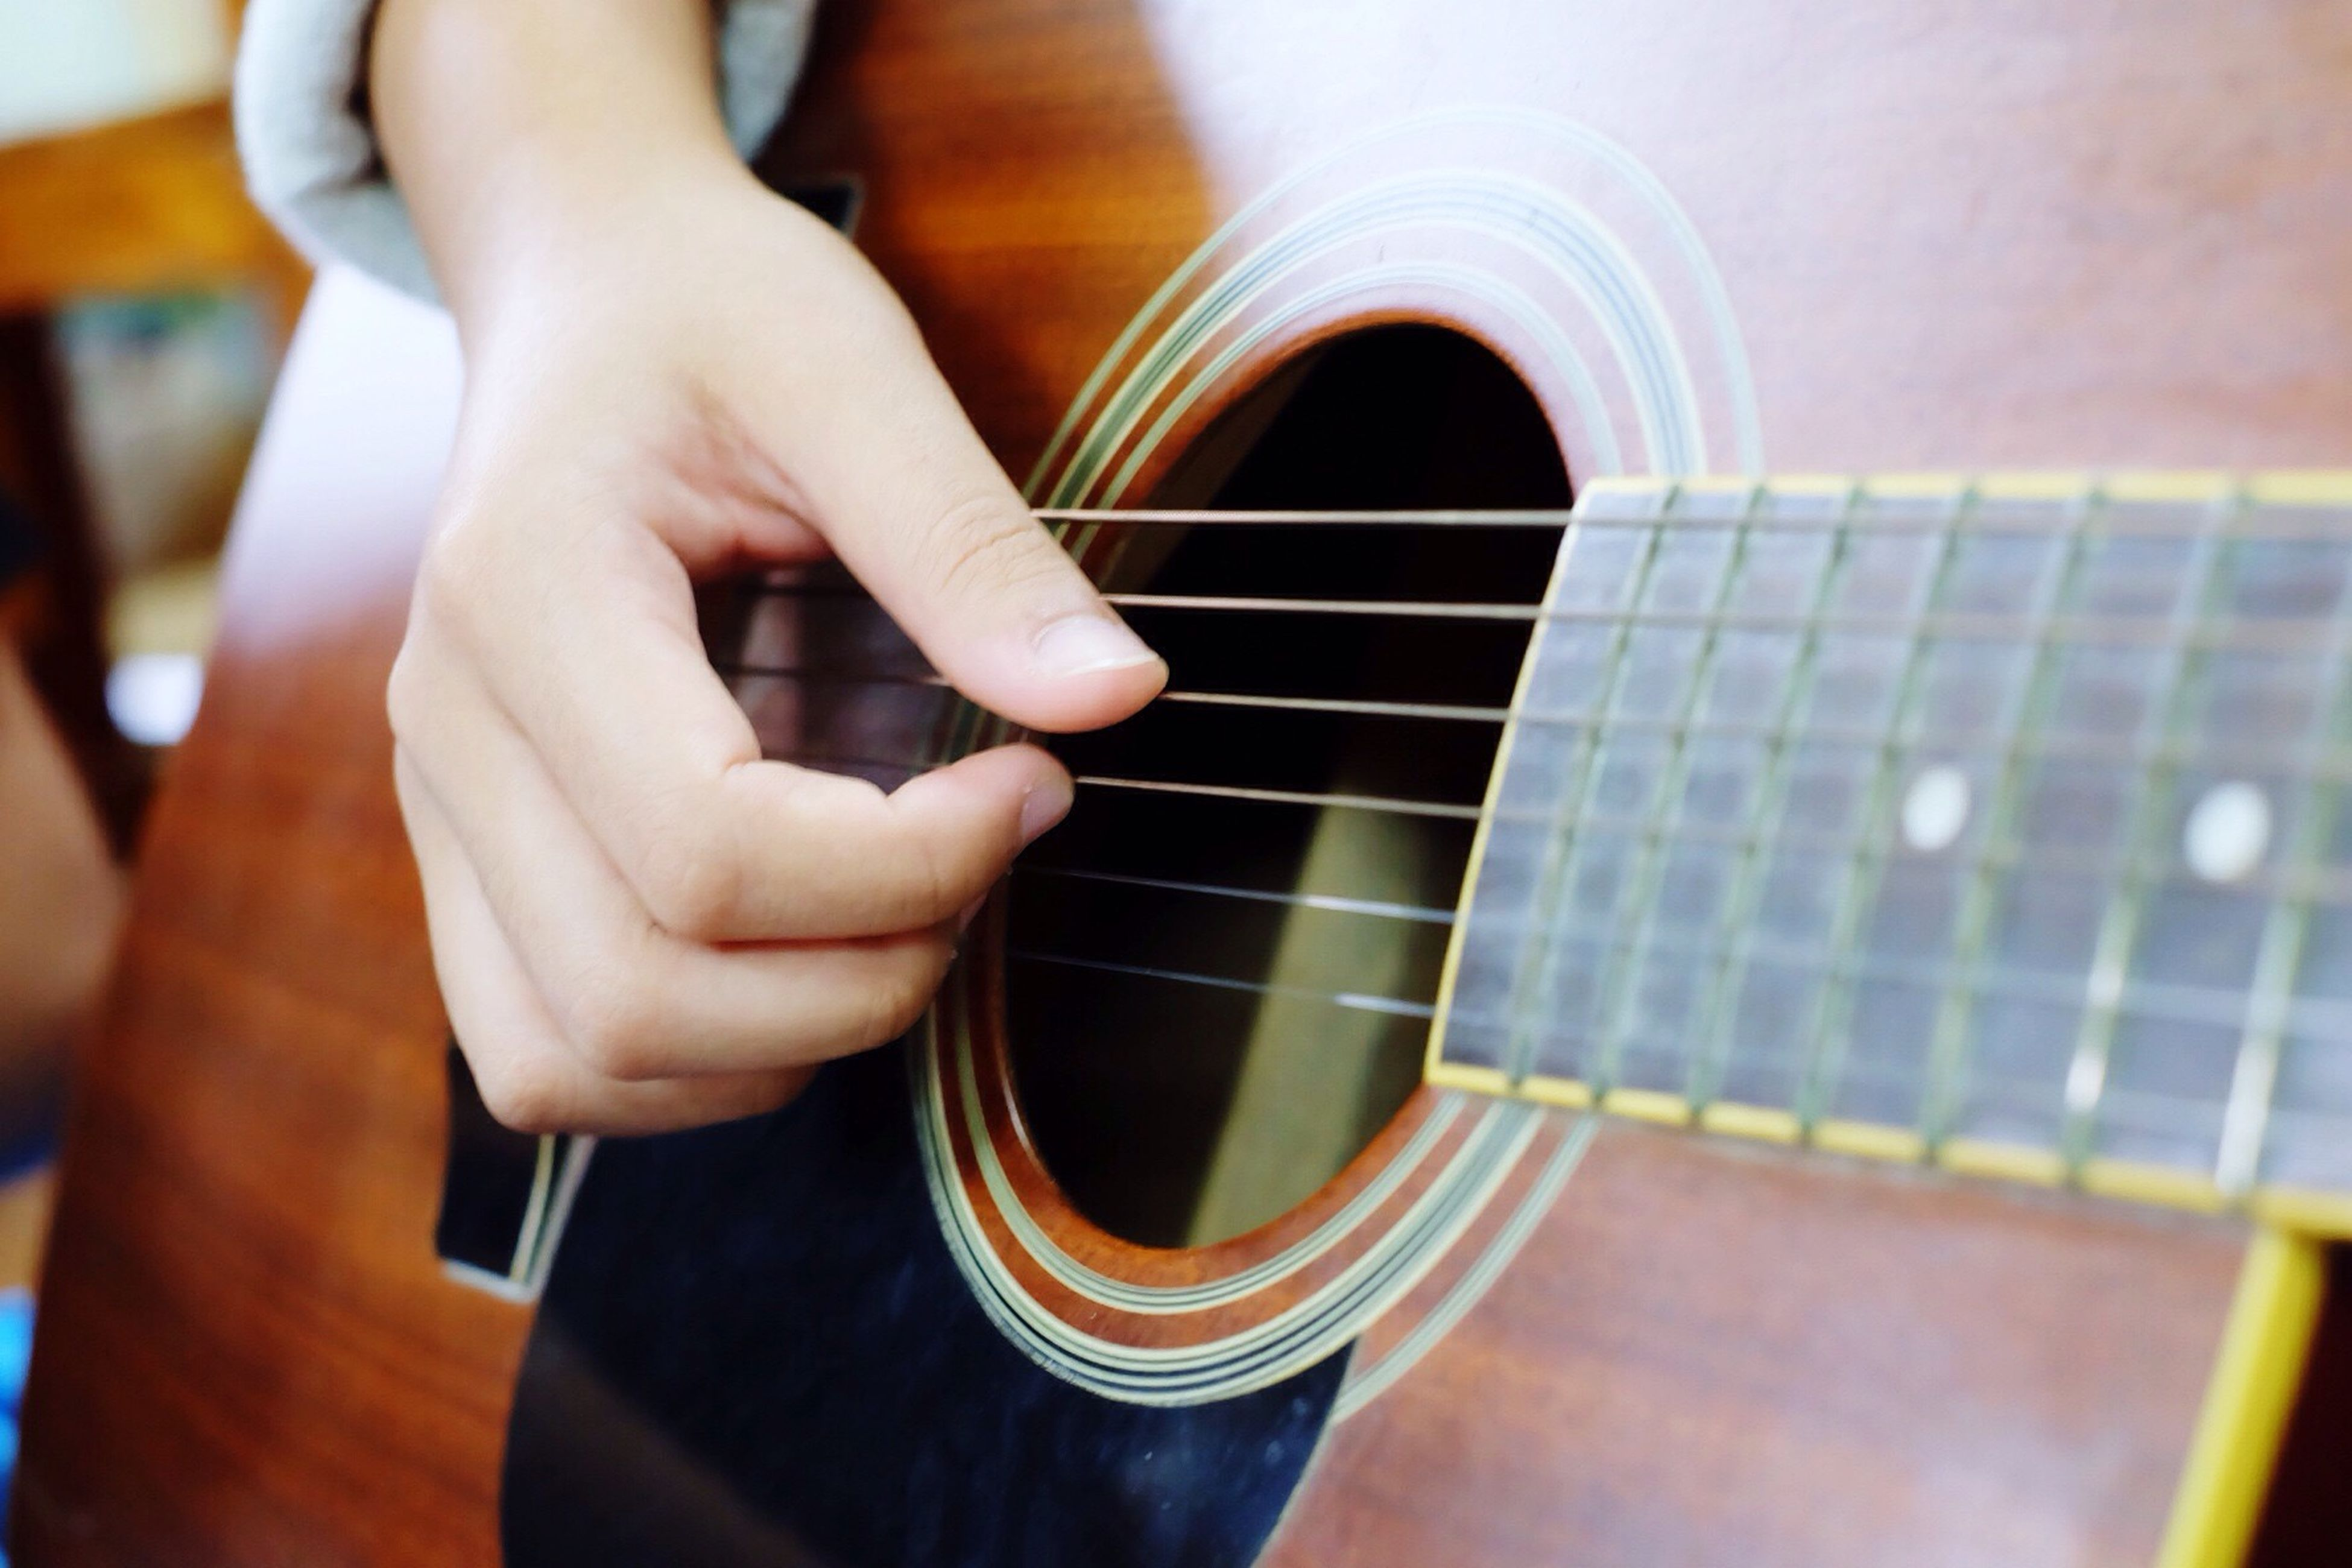 indoors, person, lifestyles, music, men, arts culture and entertainment, musical instrument, leisure activity, part of, technology, holding, playing, escalator, musical equipment, cropped, guitar